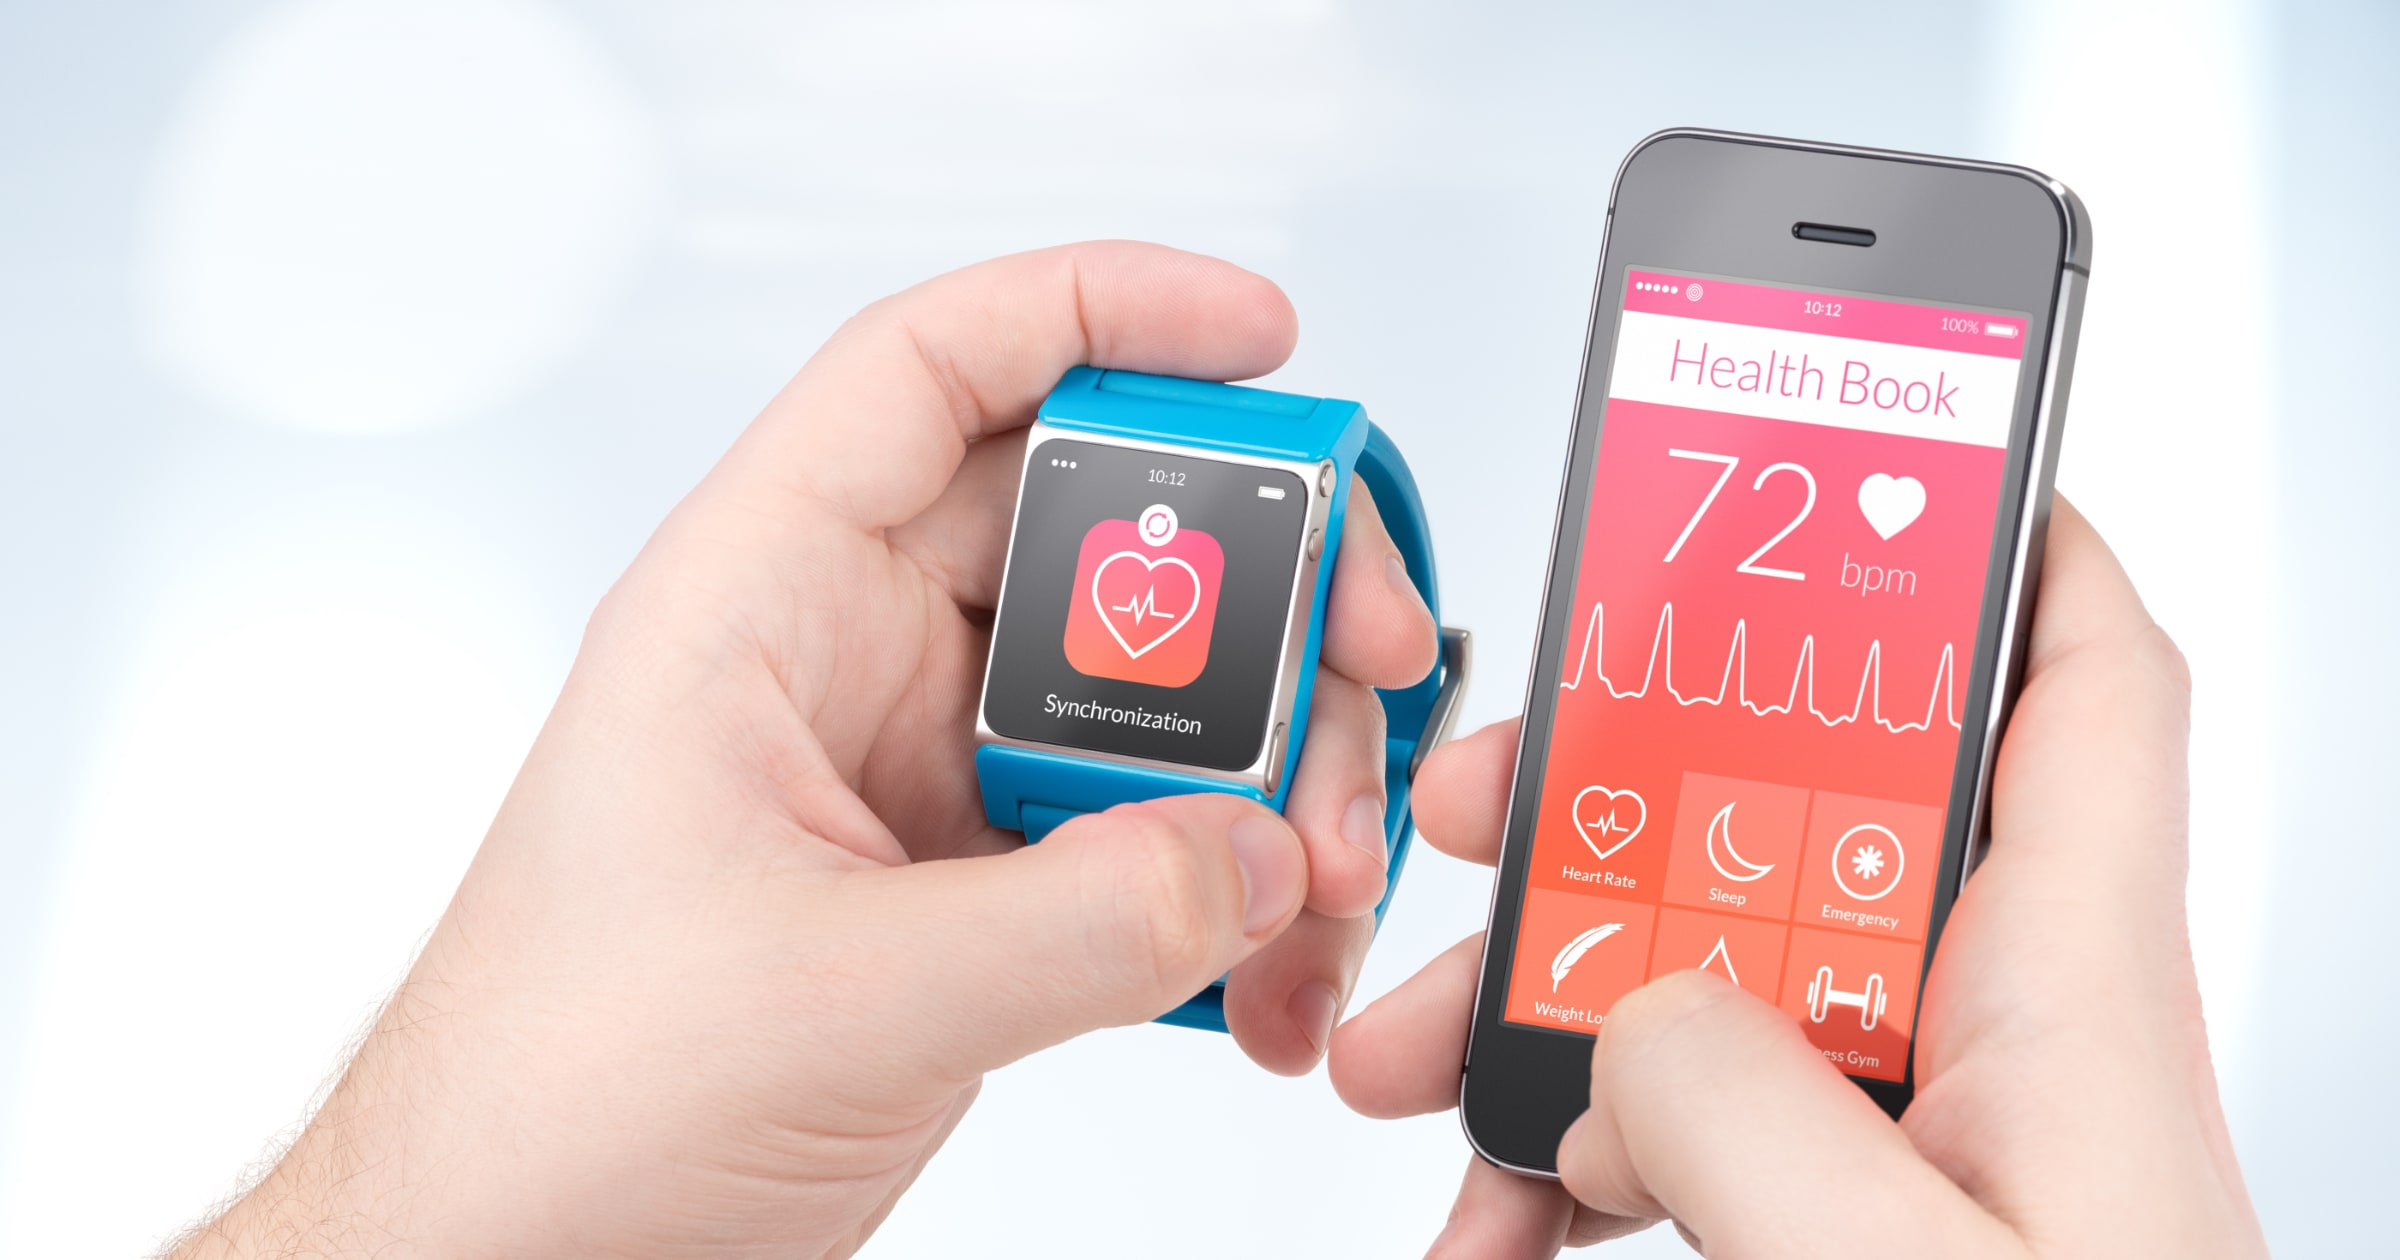 health app on generic smartphone and smartwatch